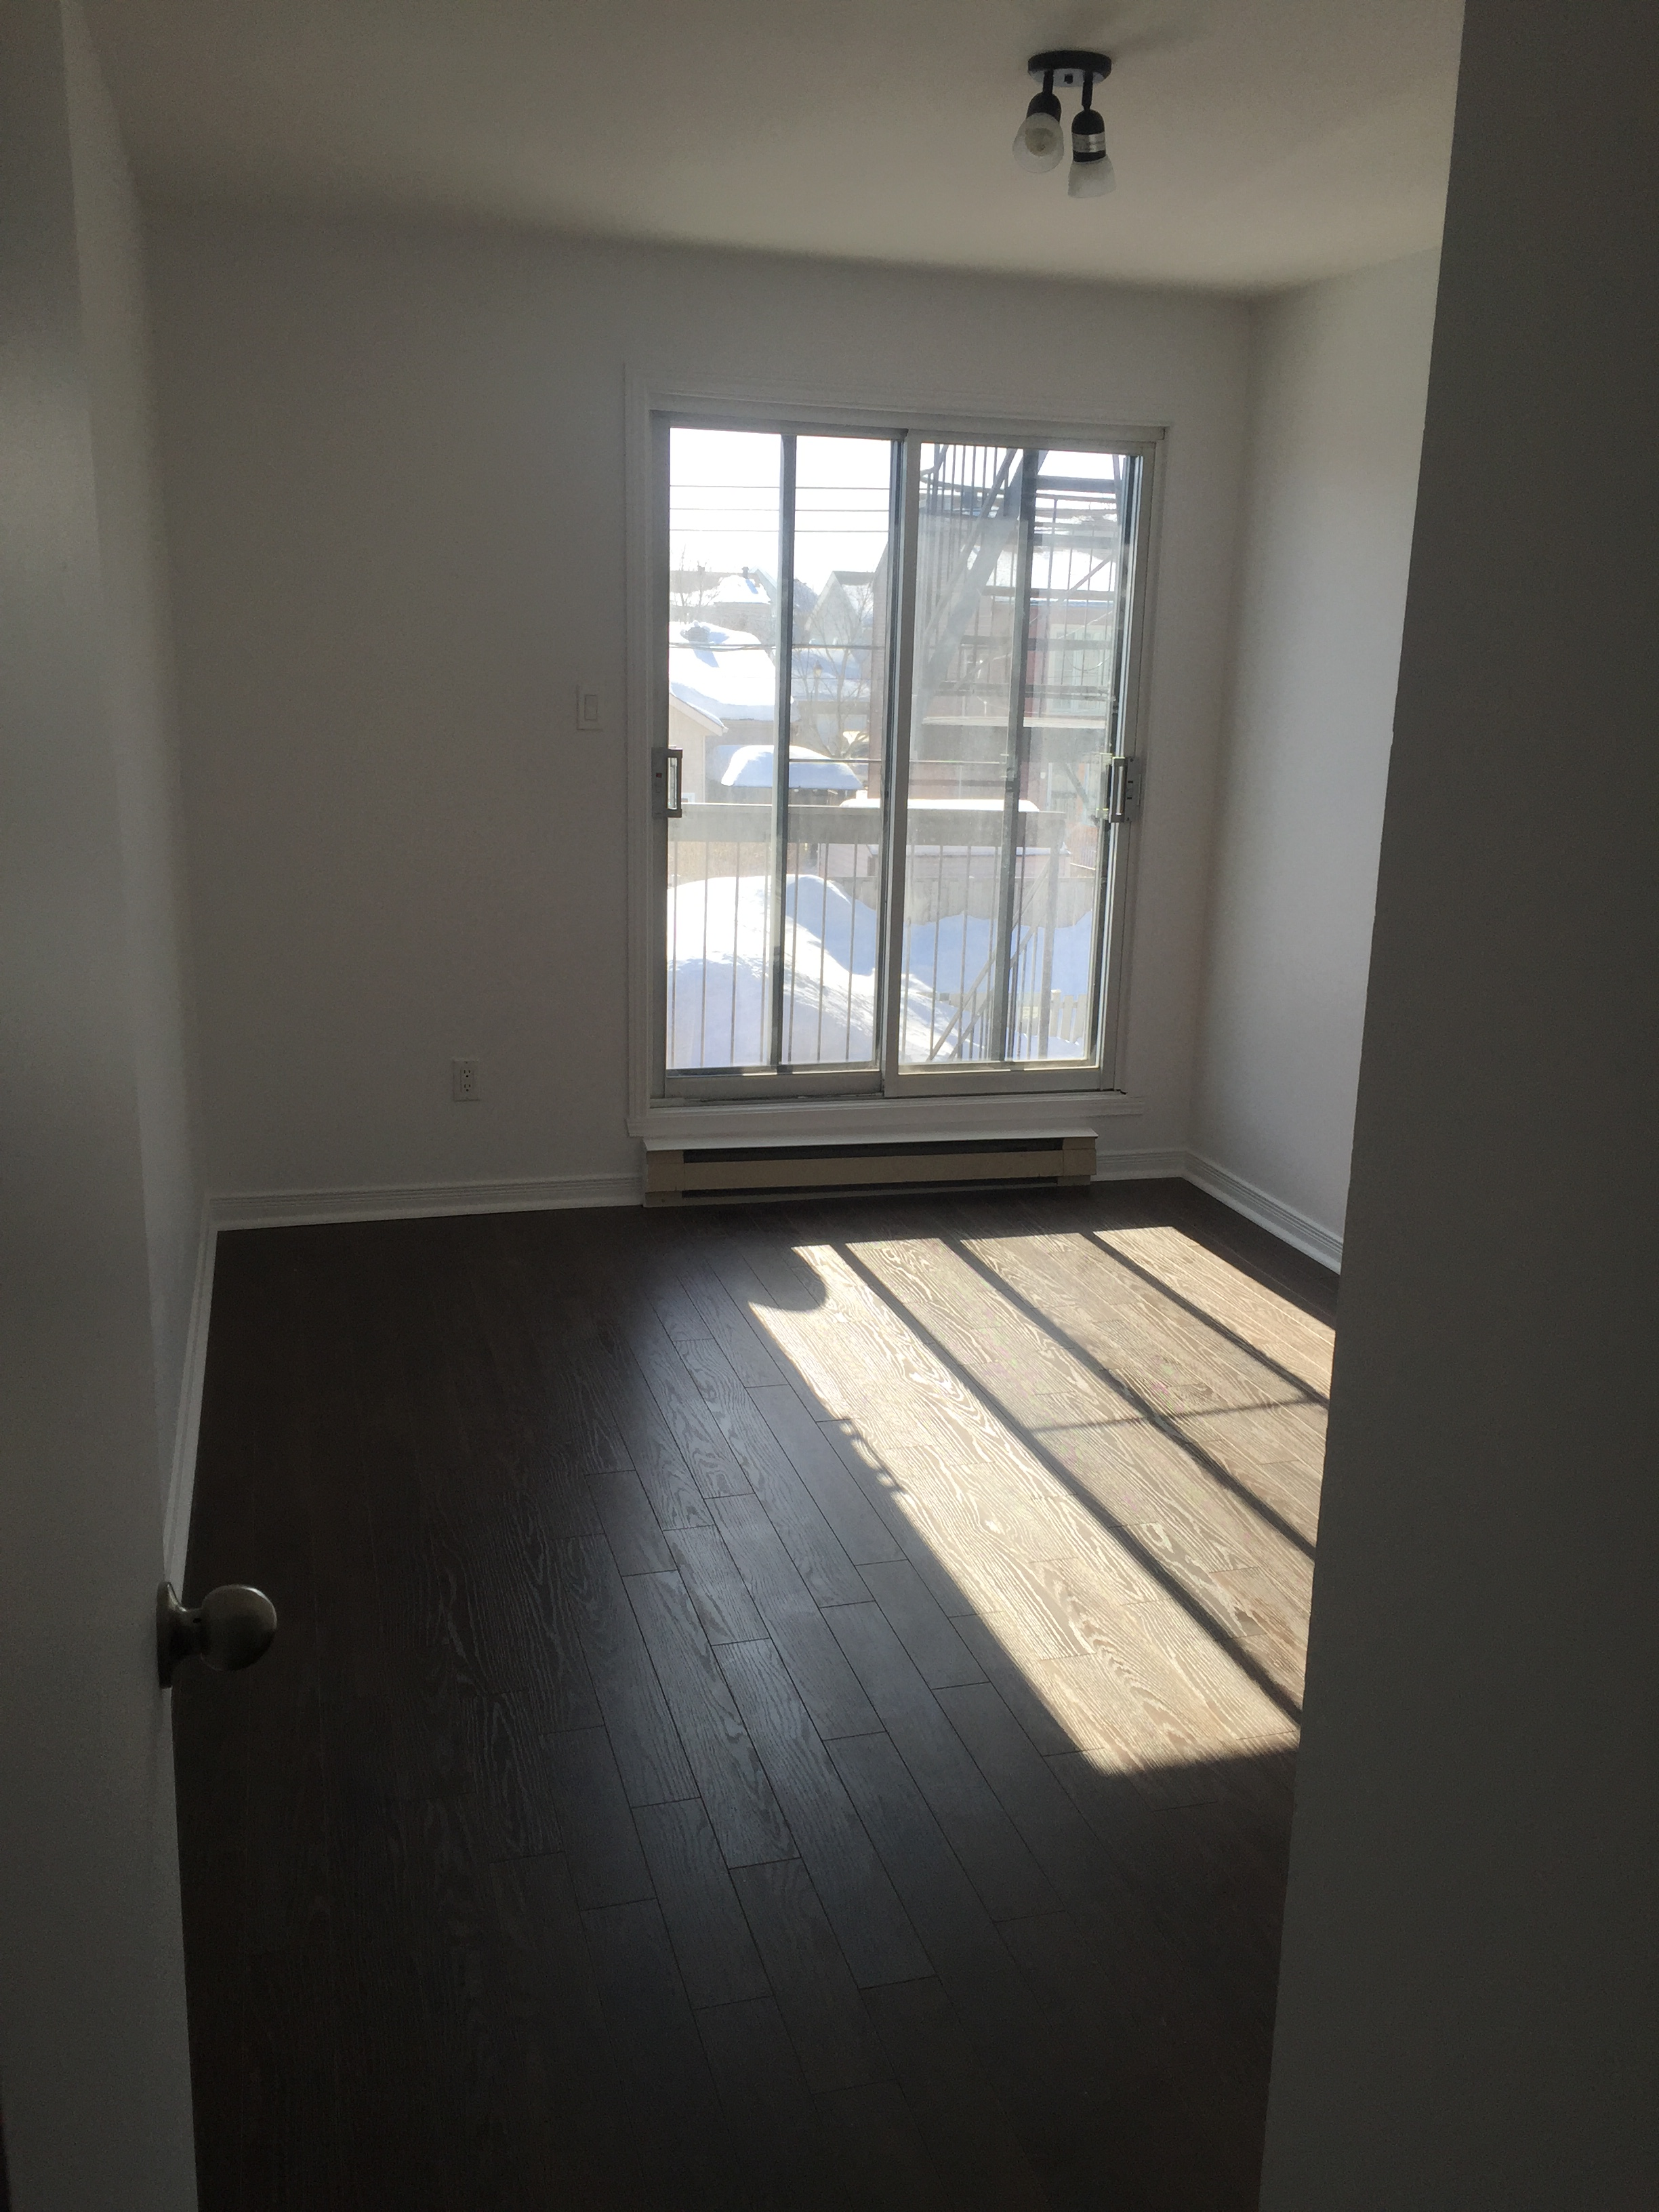 2 bedroom Apartments for rent in Pierrefonds-Roxboro at 18045-18125 Pierrefonds Boulevard - Photo 03 - RentersPages – L266033